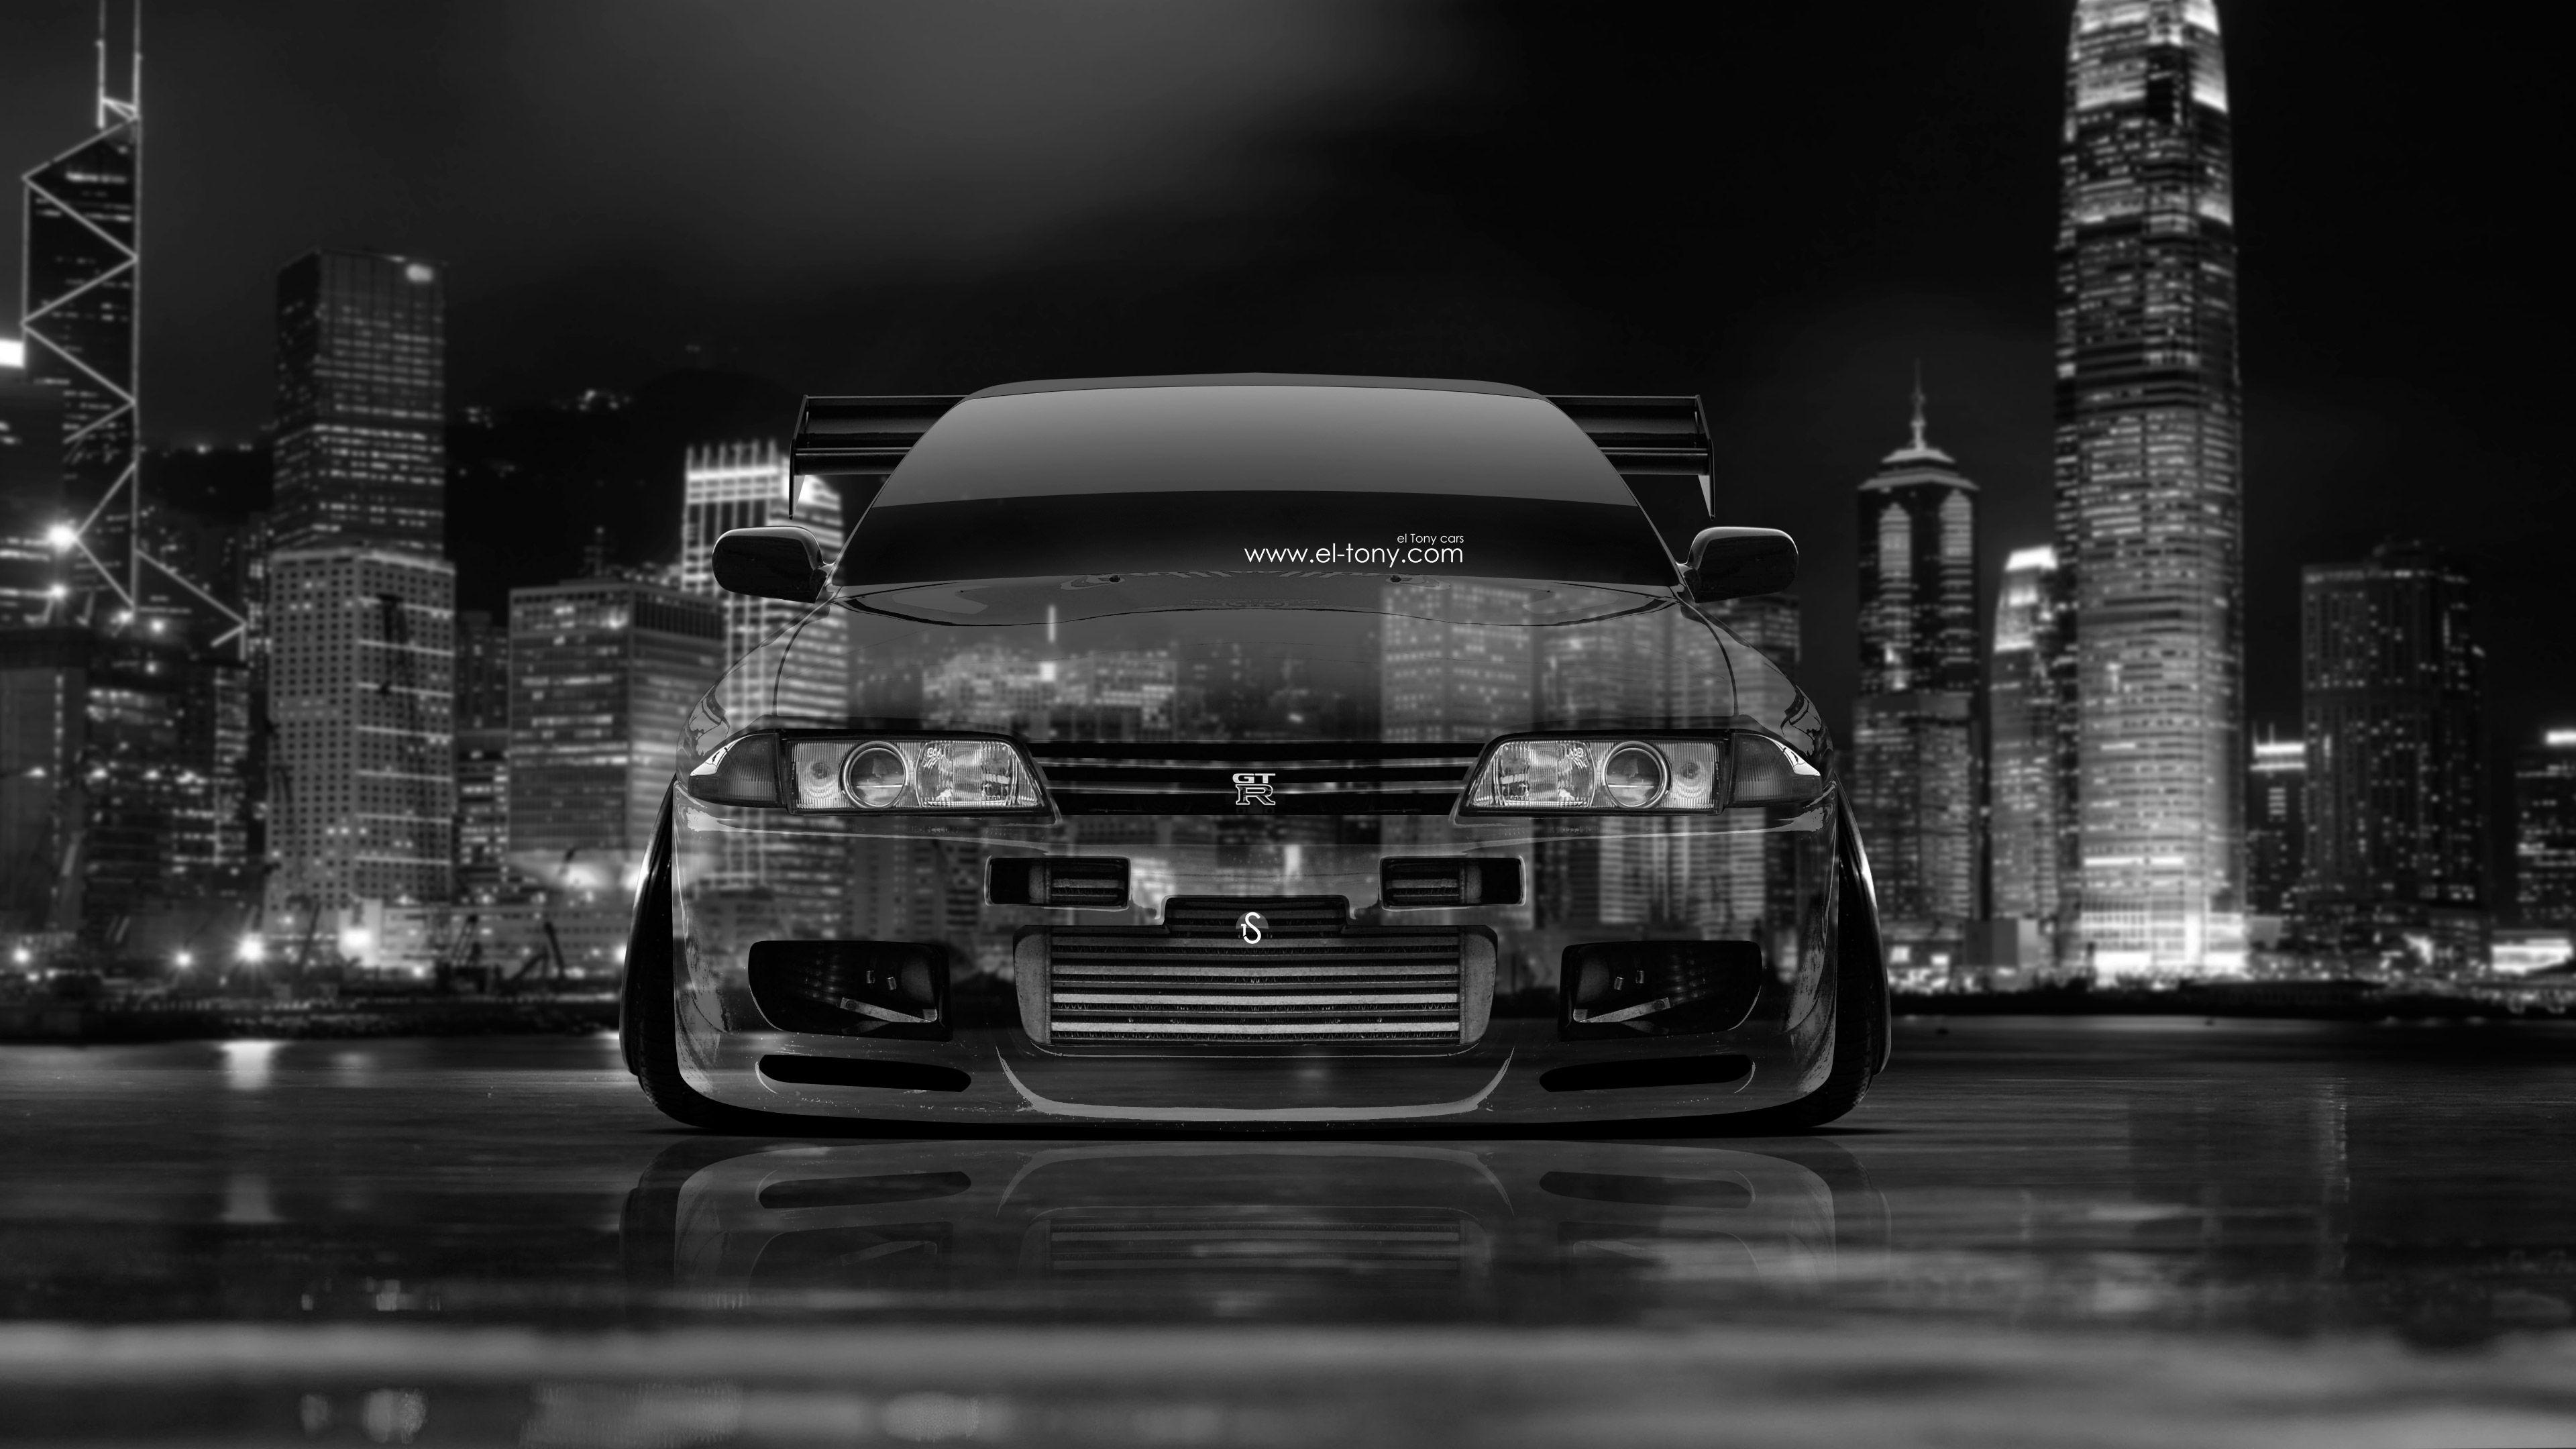 4K Wallpapers Nissan Skyline GTR R32 JDM Crystal City Car 2014 | el Tony